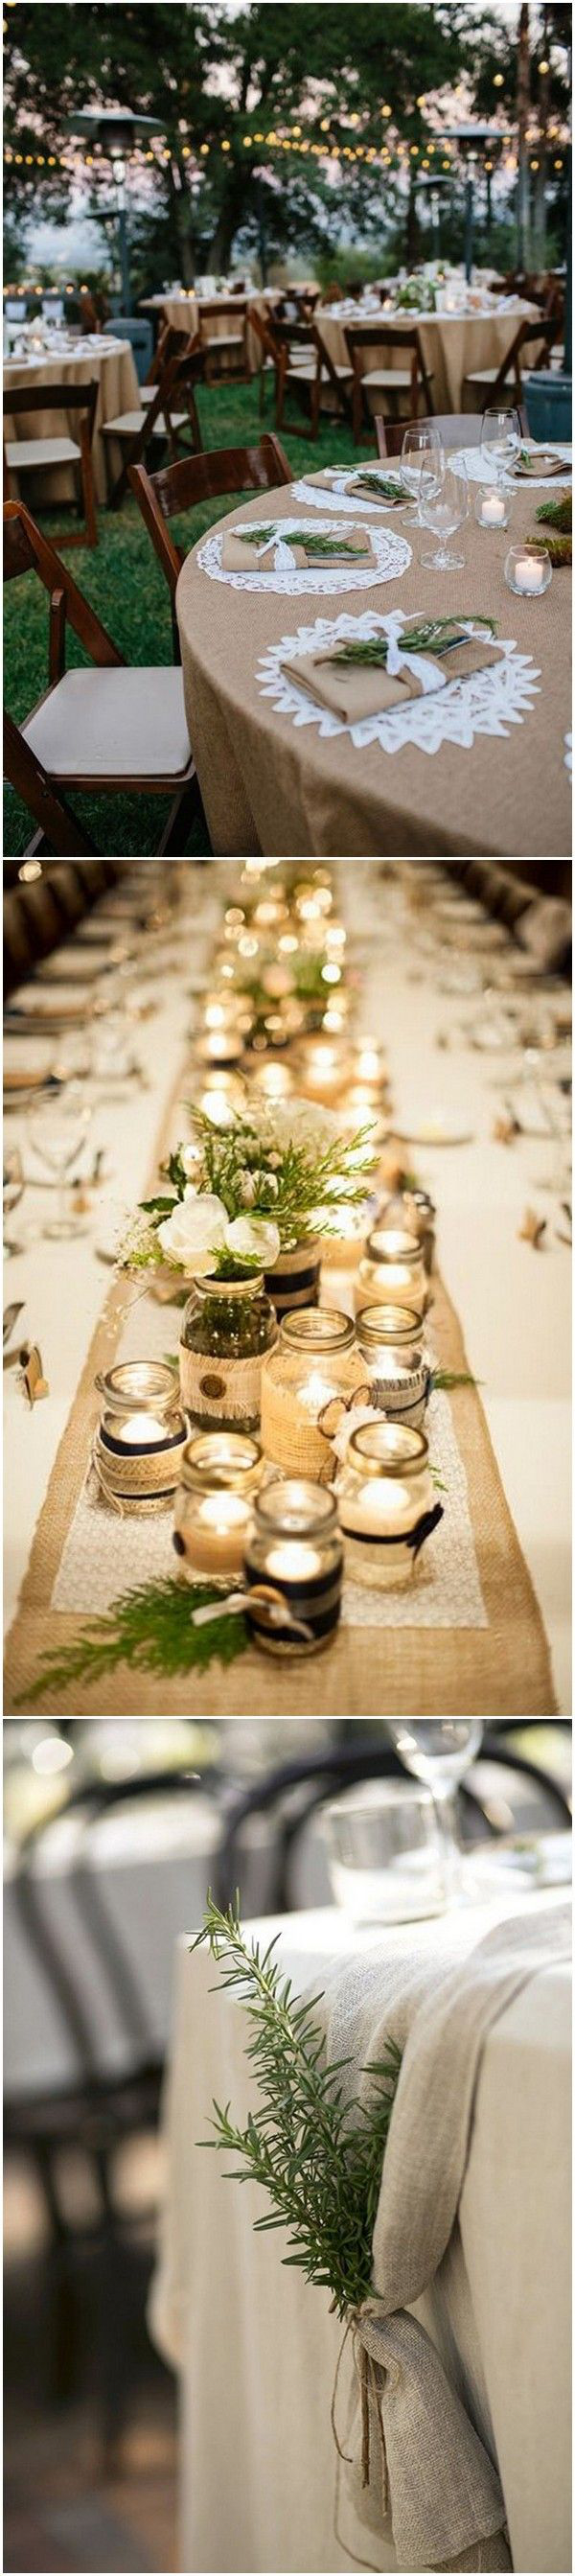 20 brilliant wedding table decoration ideas page 2 of 2 country rustic lace and burlap wedding table decoration ideas wedding reception table decorations junglespirit Choice Image